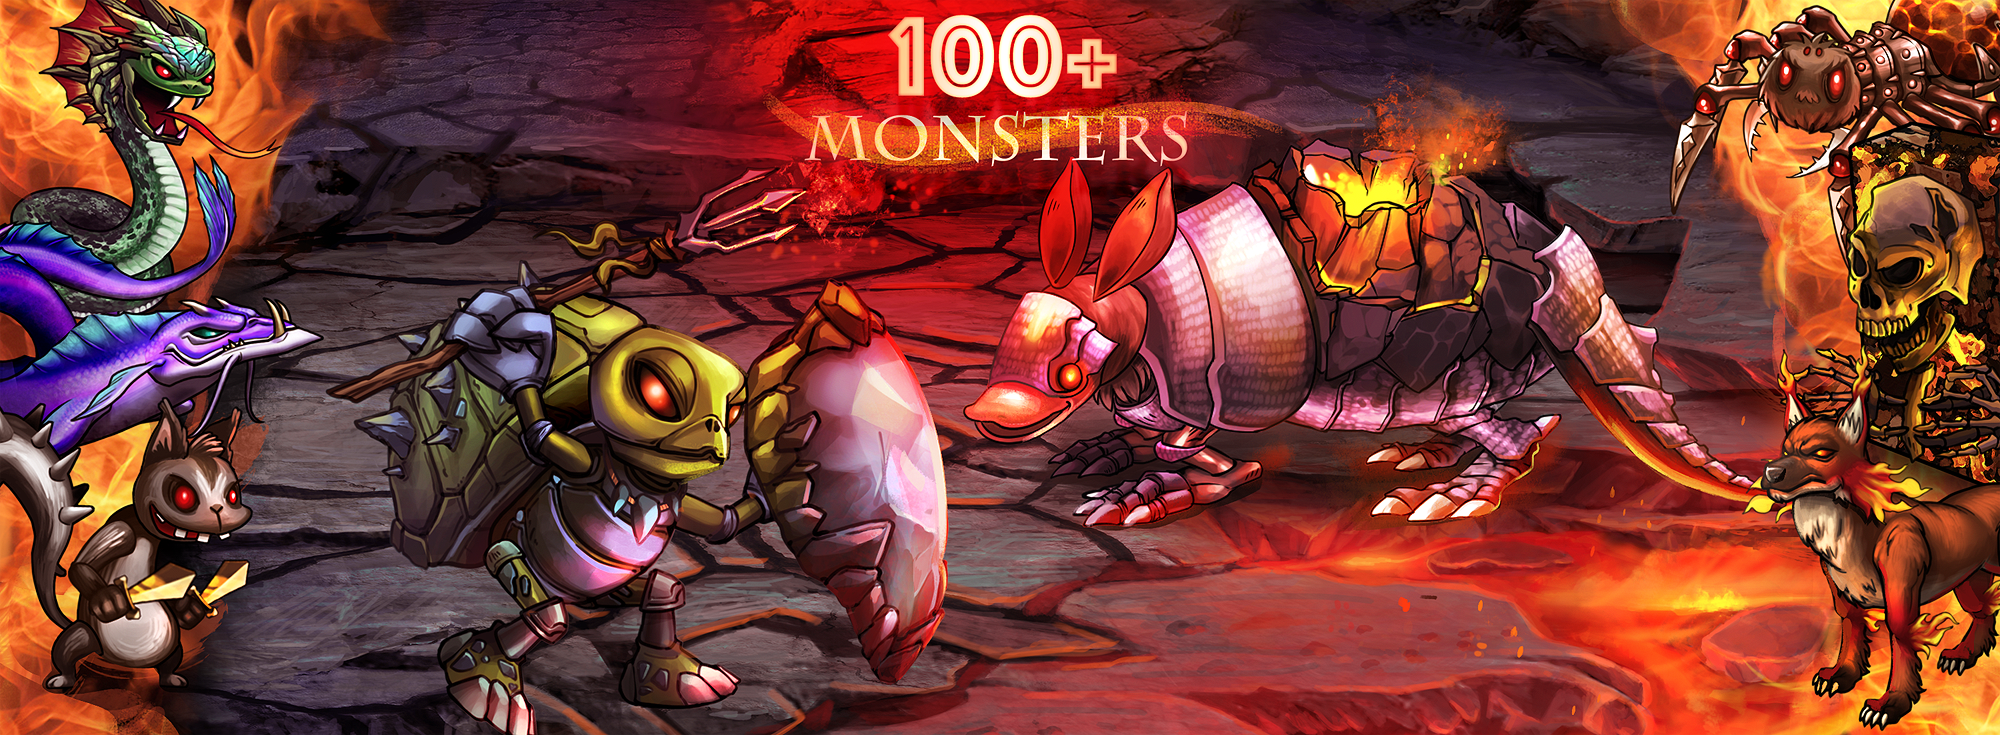 promote_monsters.png